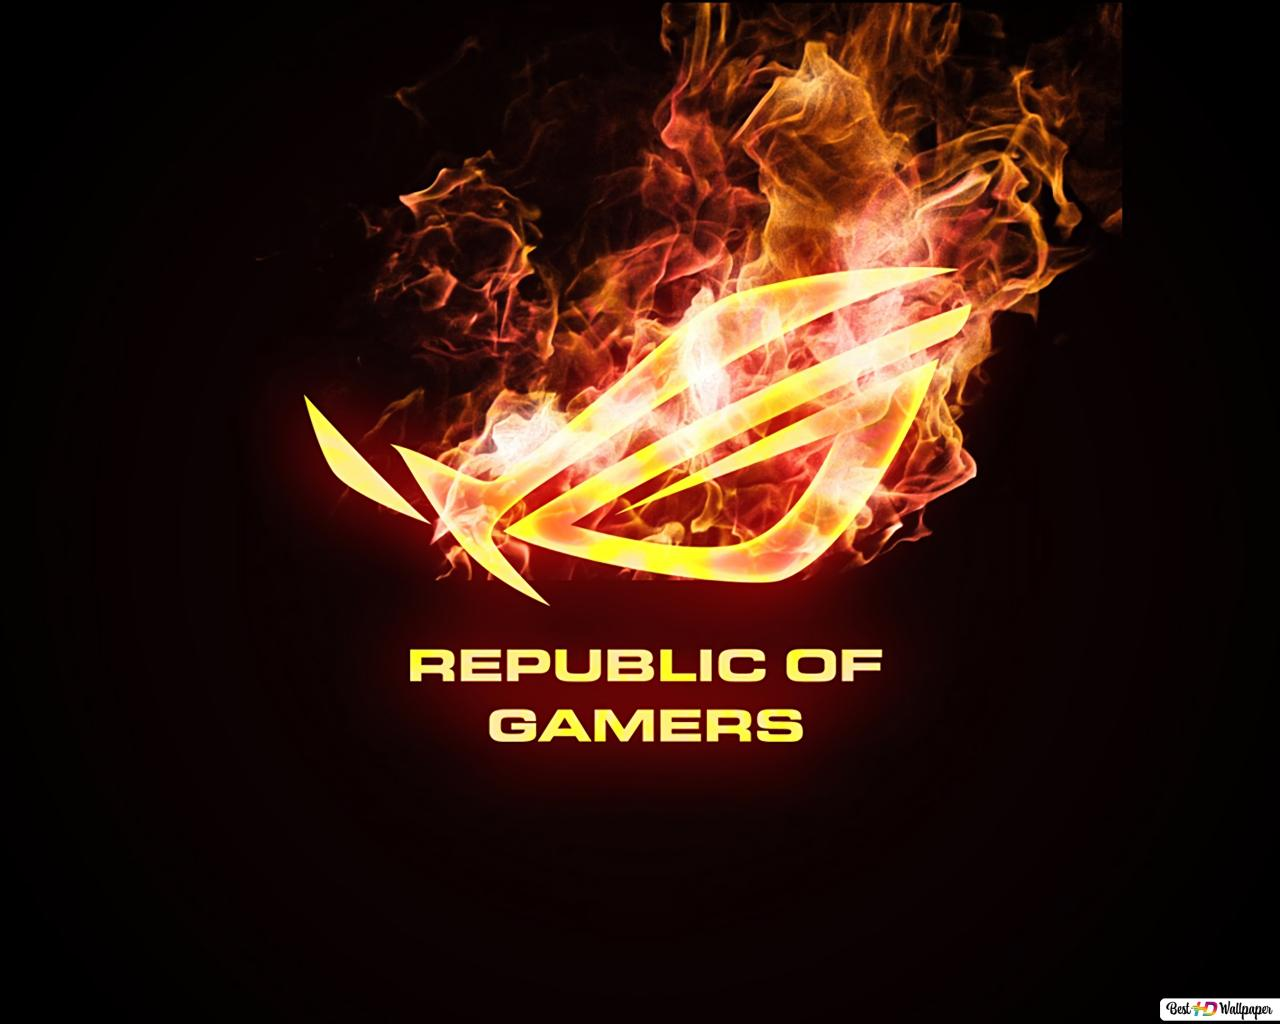 asus rog republic of gamers fire themed logo wallpaper 1280x1024 53667 32